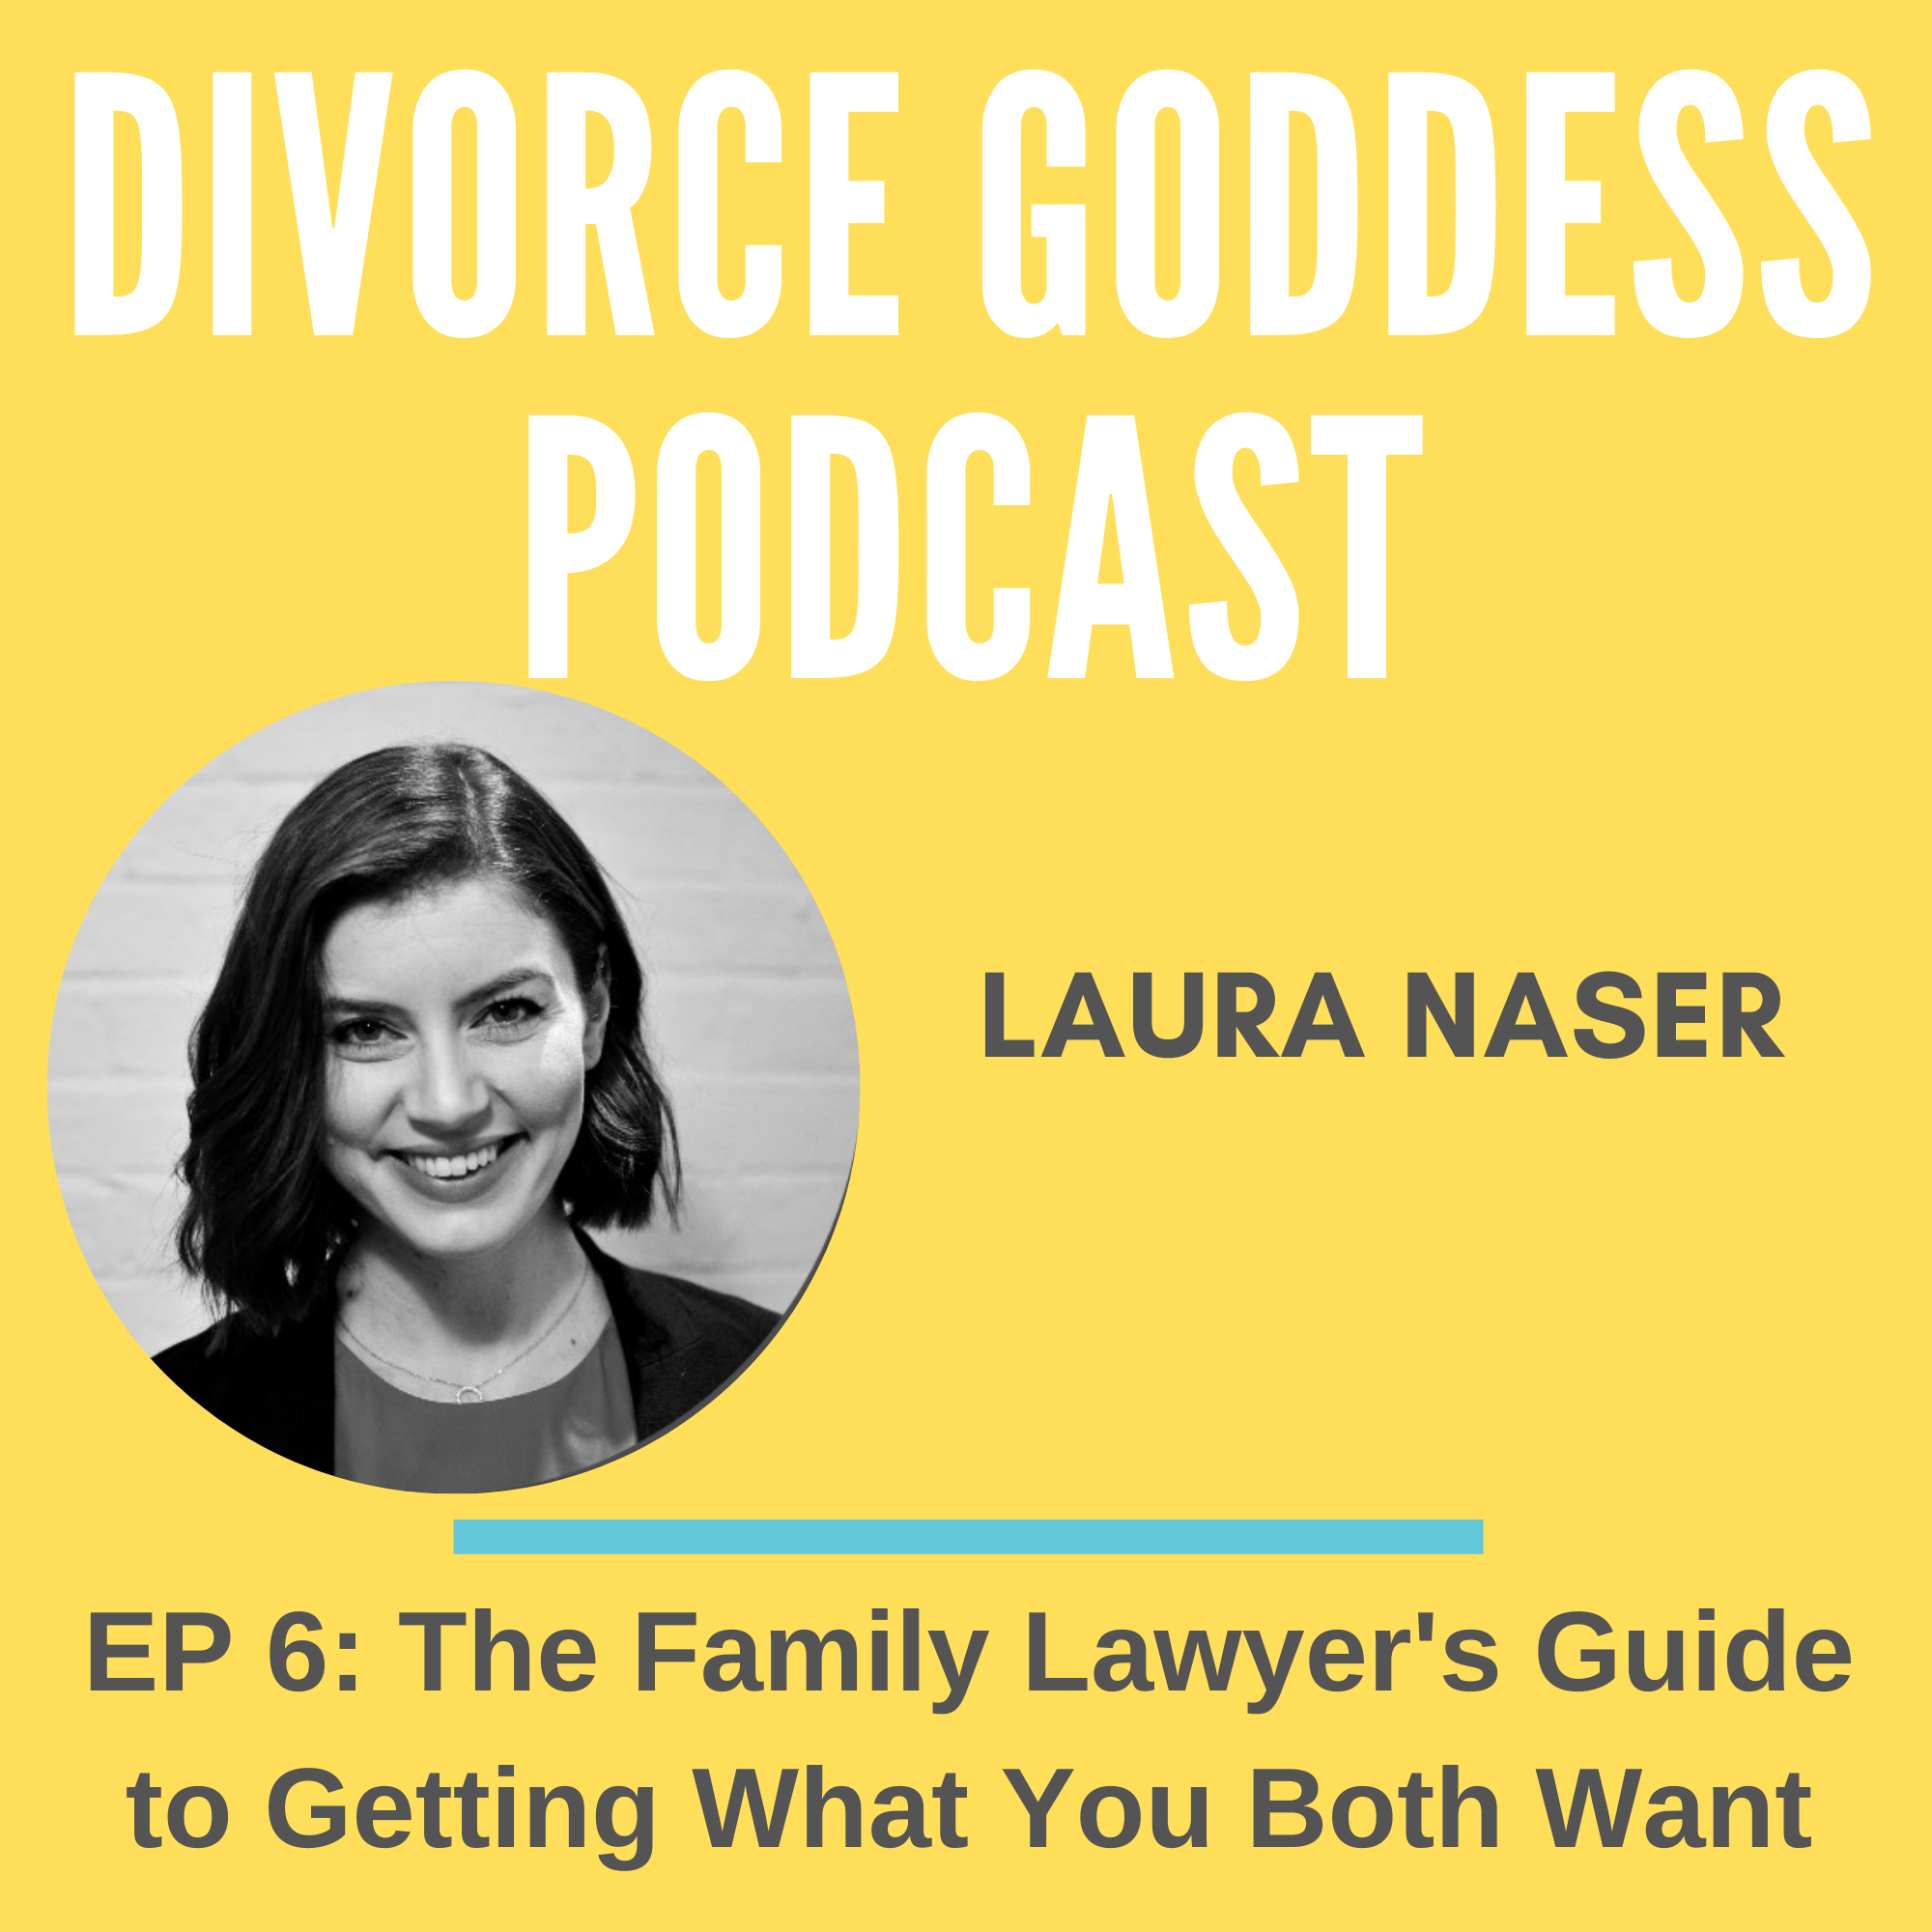 Divorce Goddess Podcast - The Family Lawyer's Guide to Separation & Divorce - How to Get What You Both Want